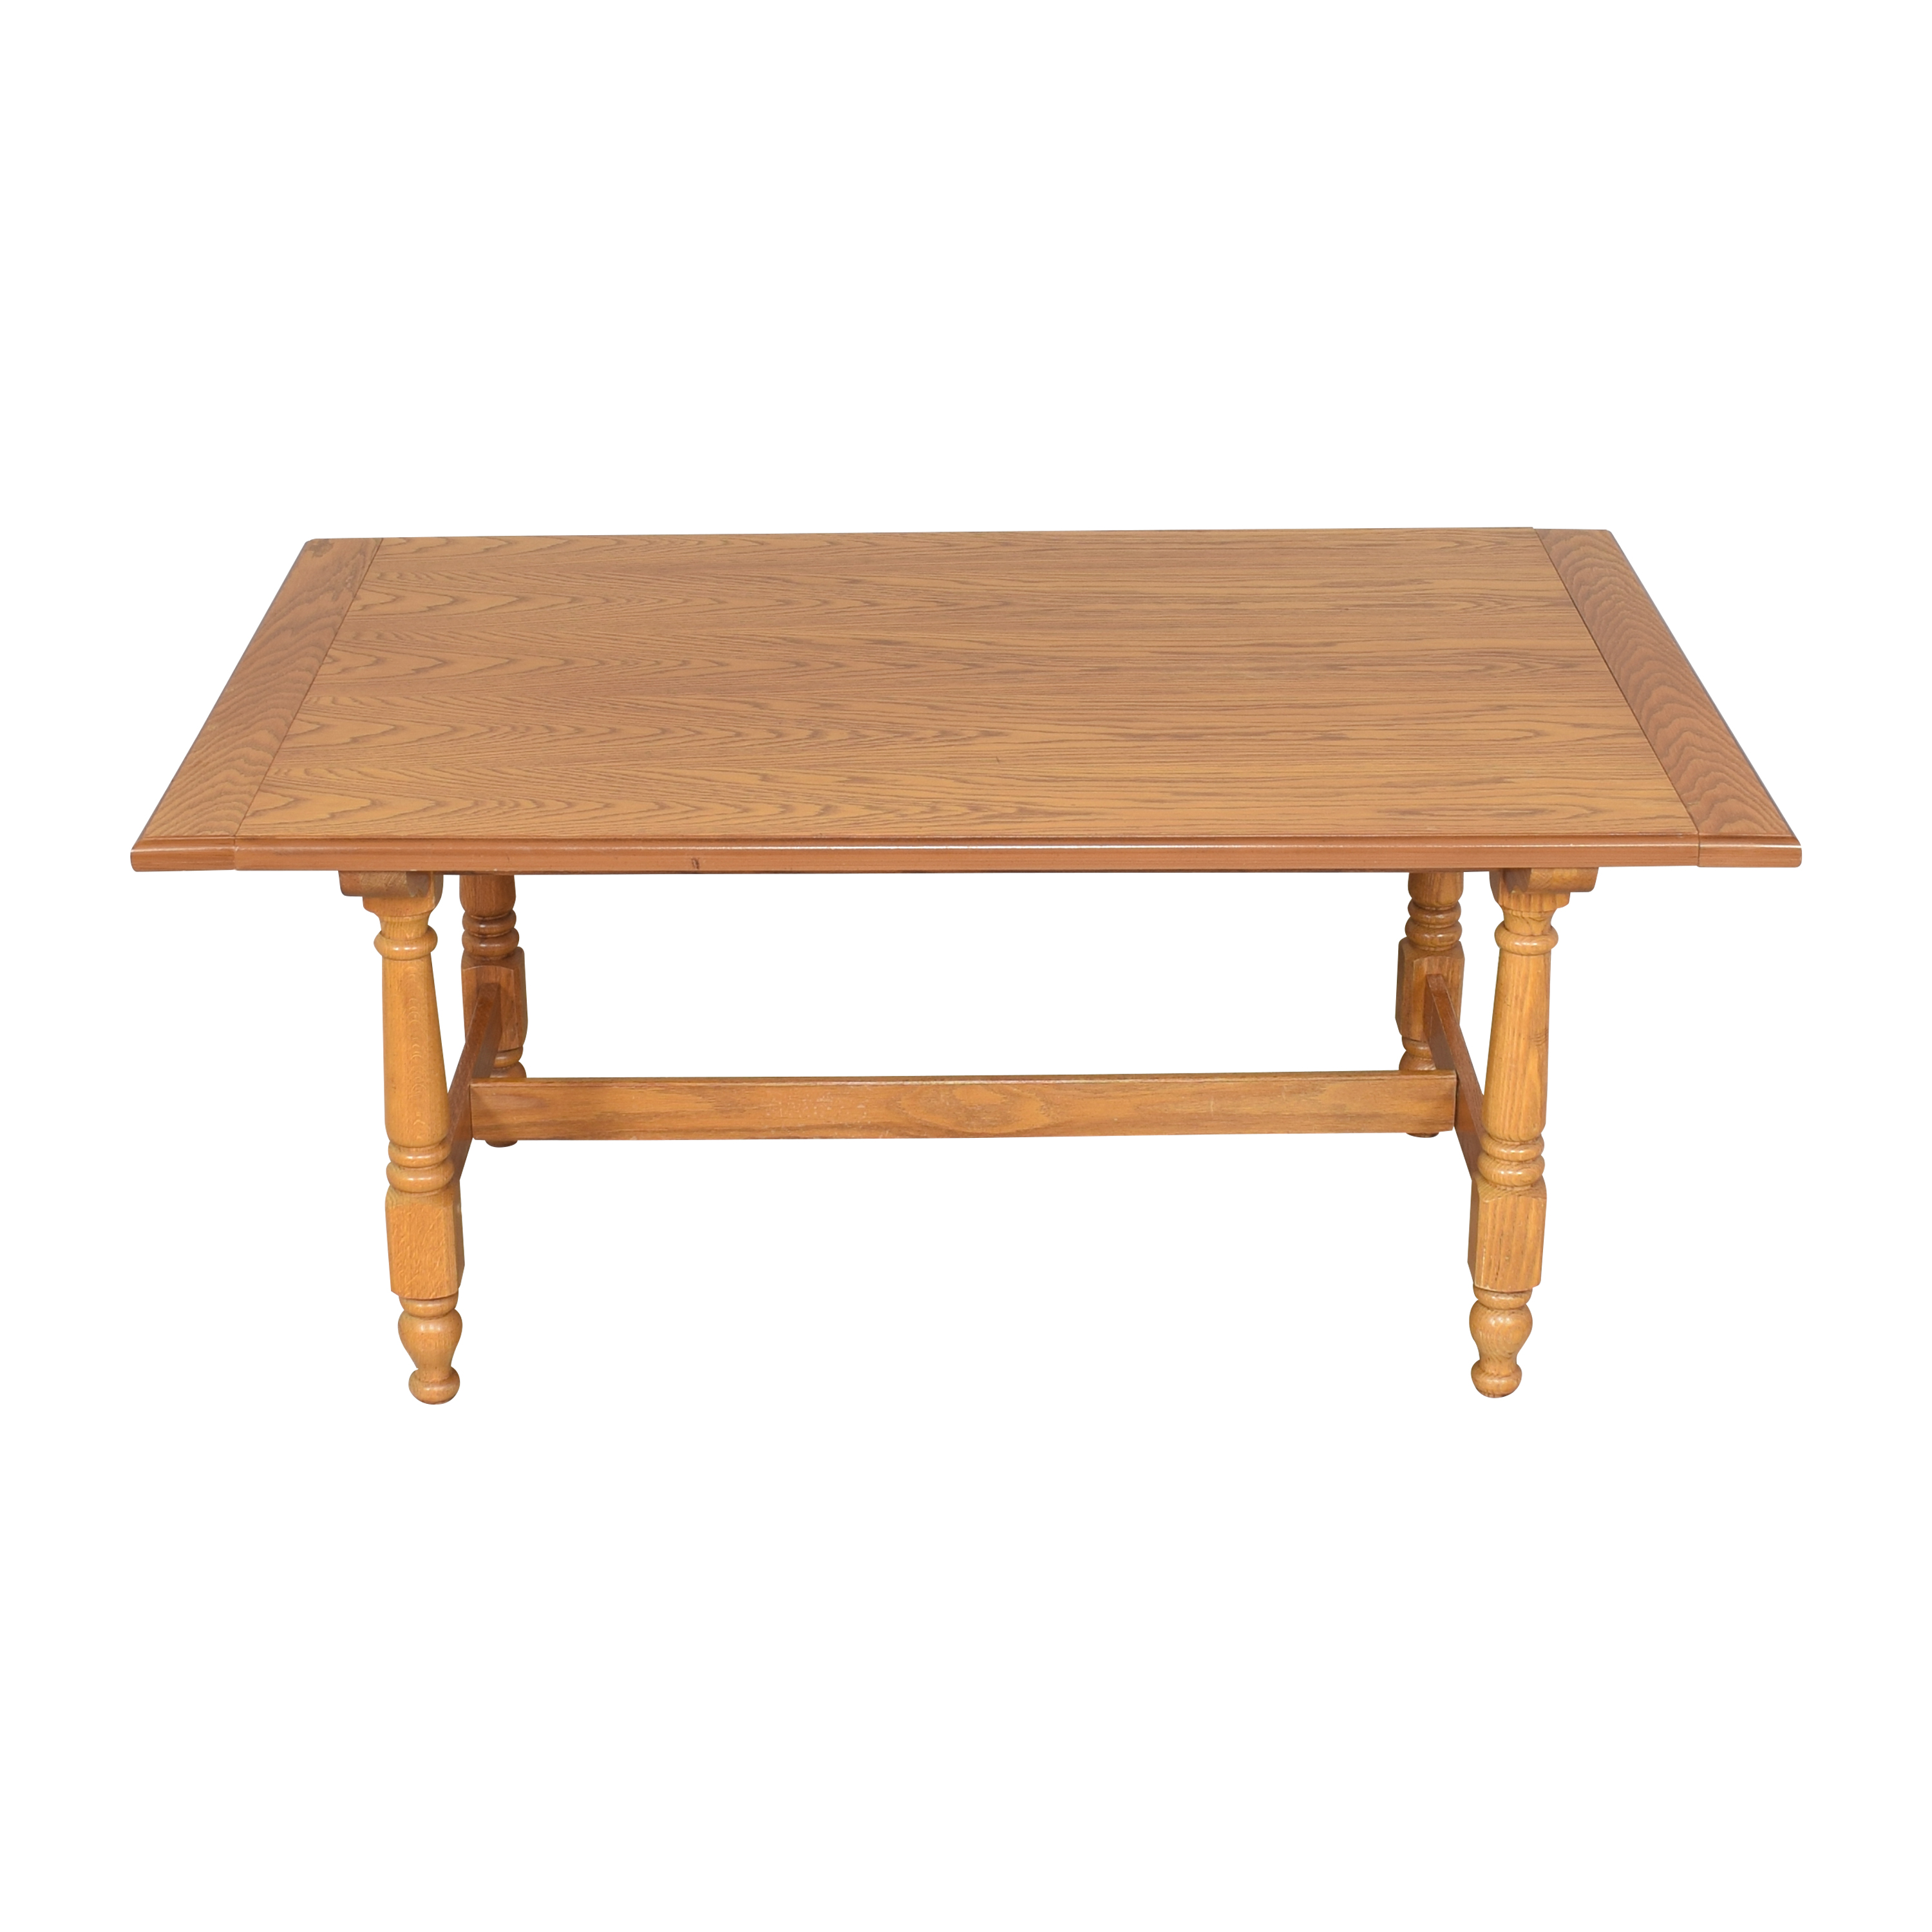 Thomasville Trestle Dining Table / Tables